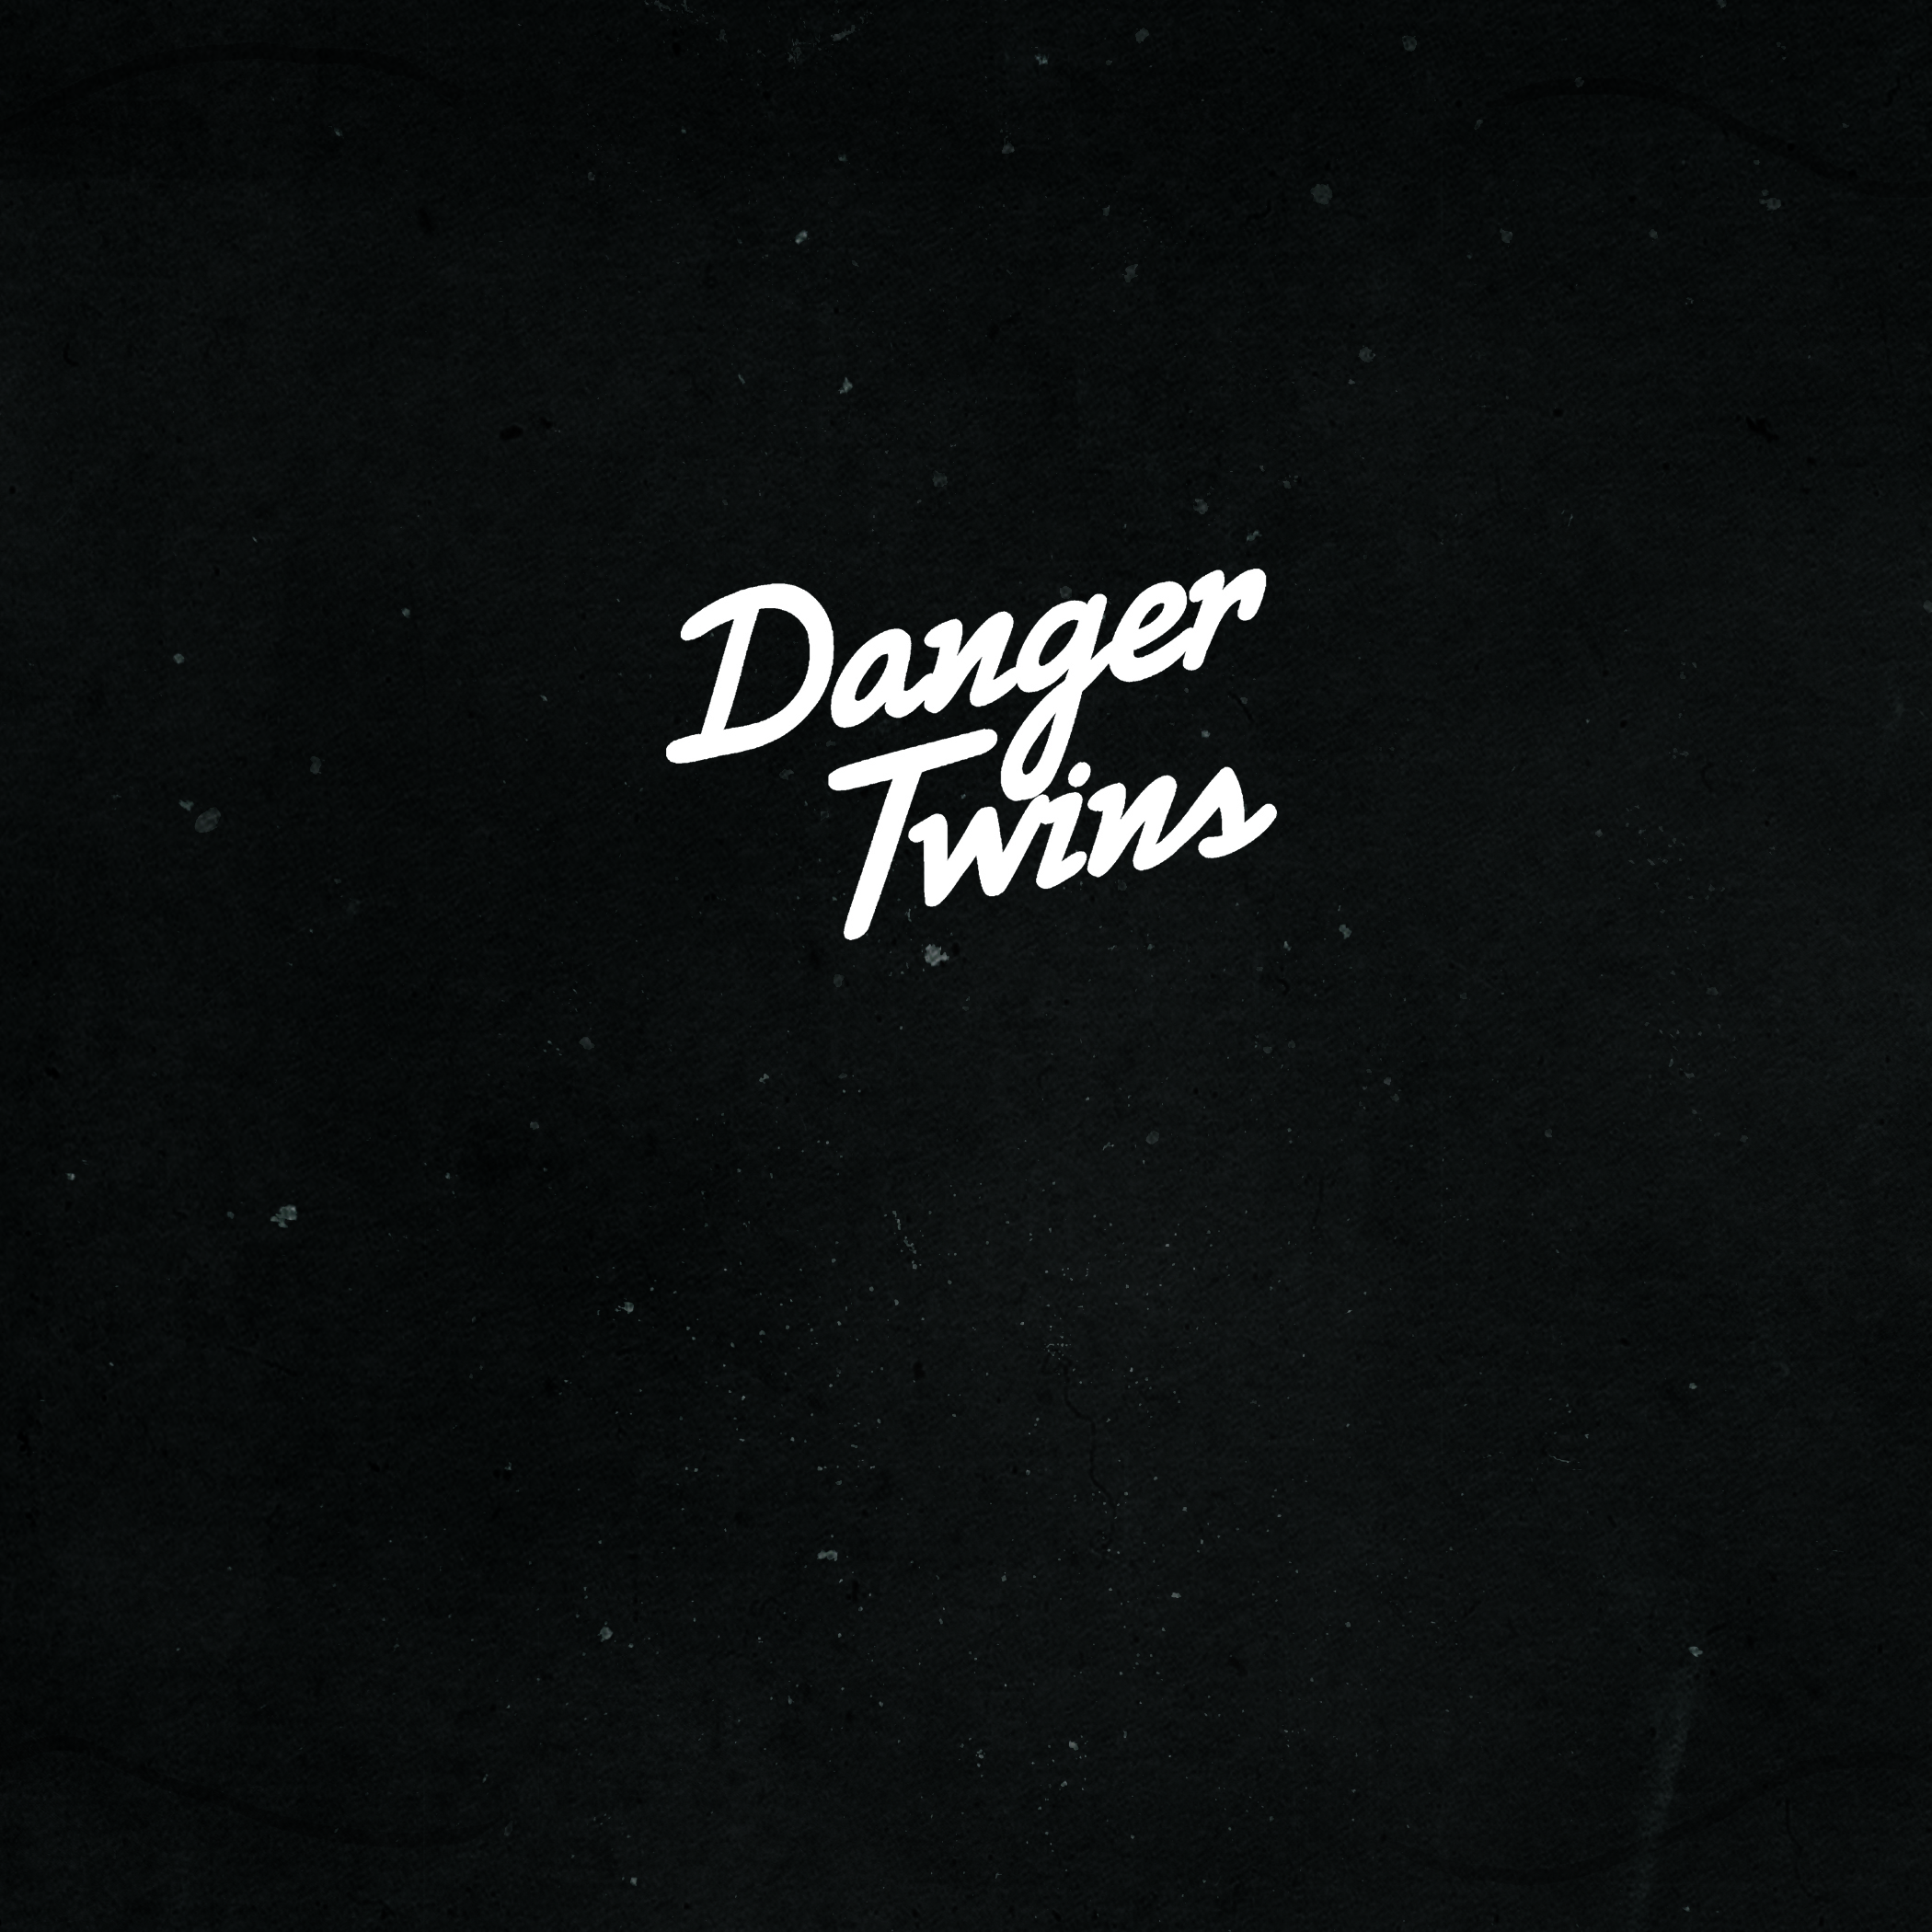 DangerTwins_BLK_Background small.jpg